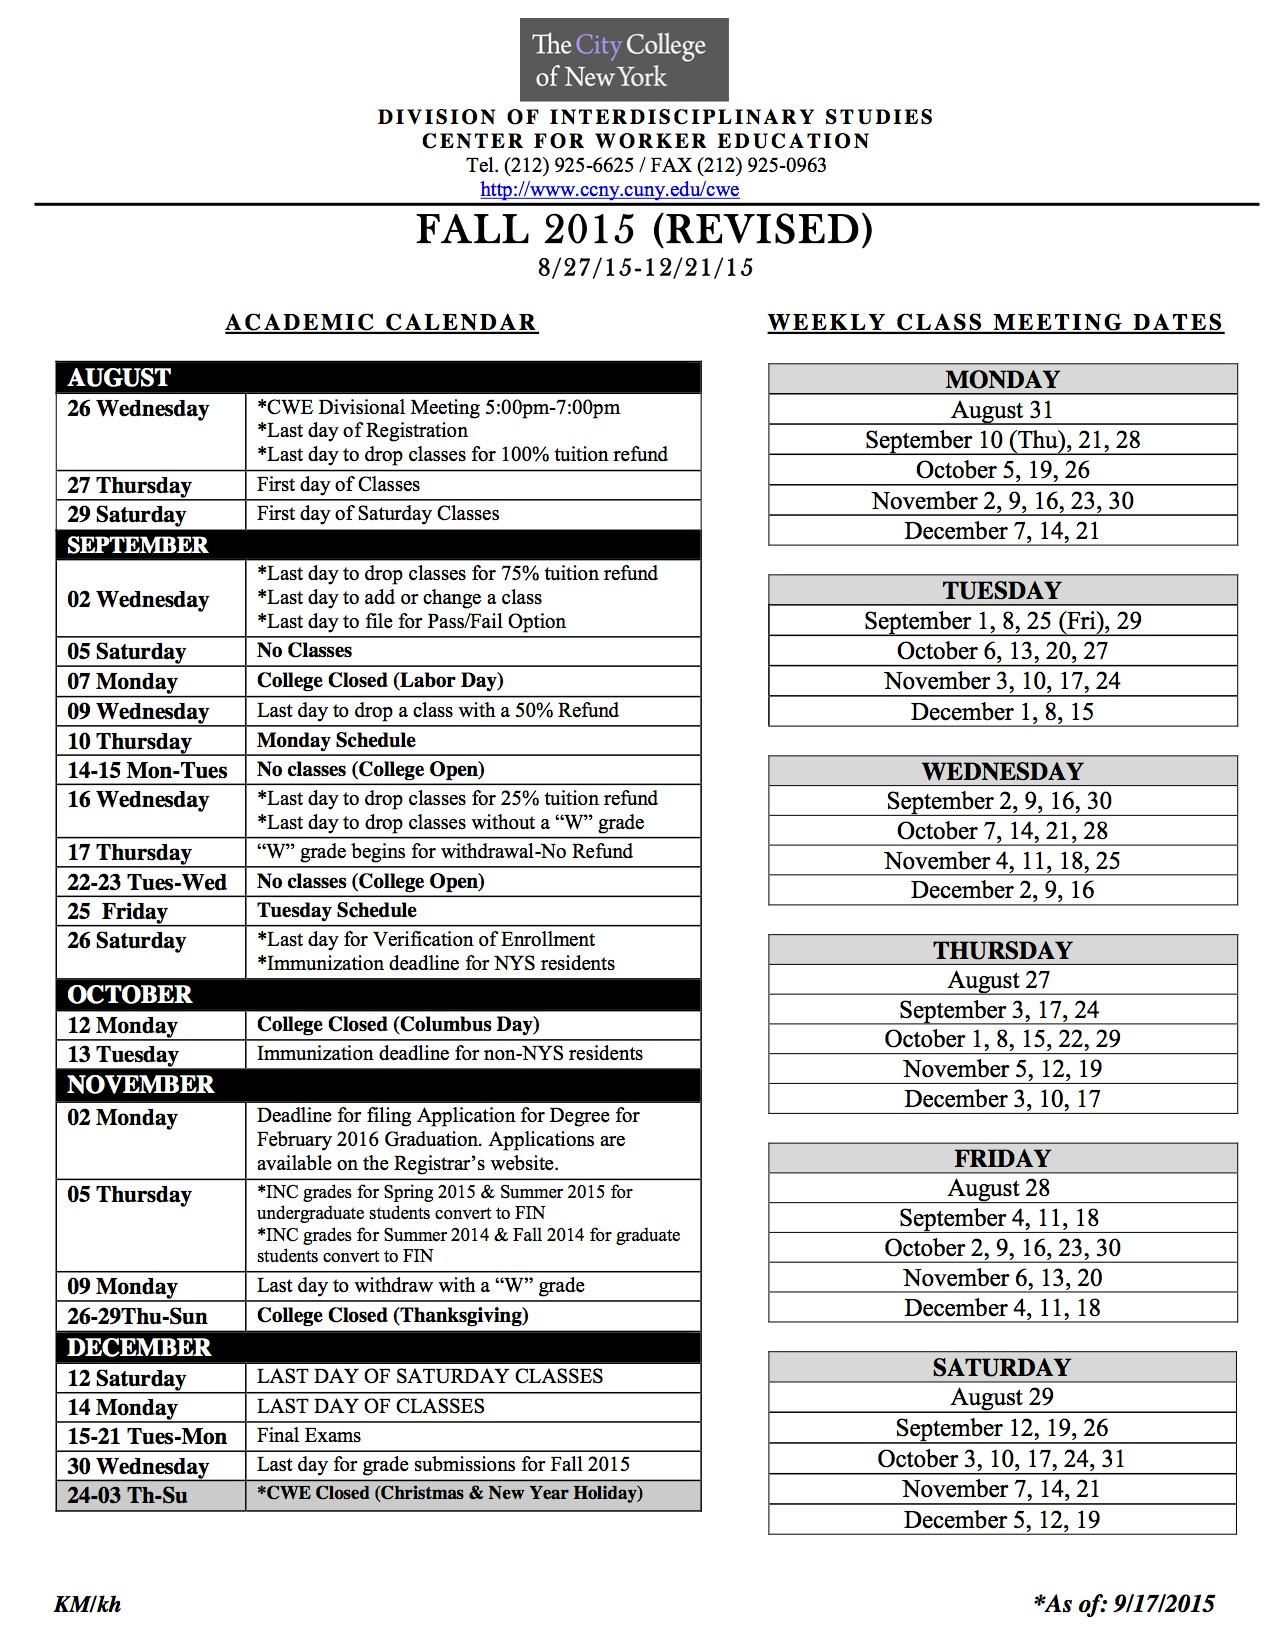 Academic Calendar The City College Of New York